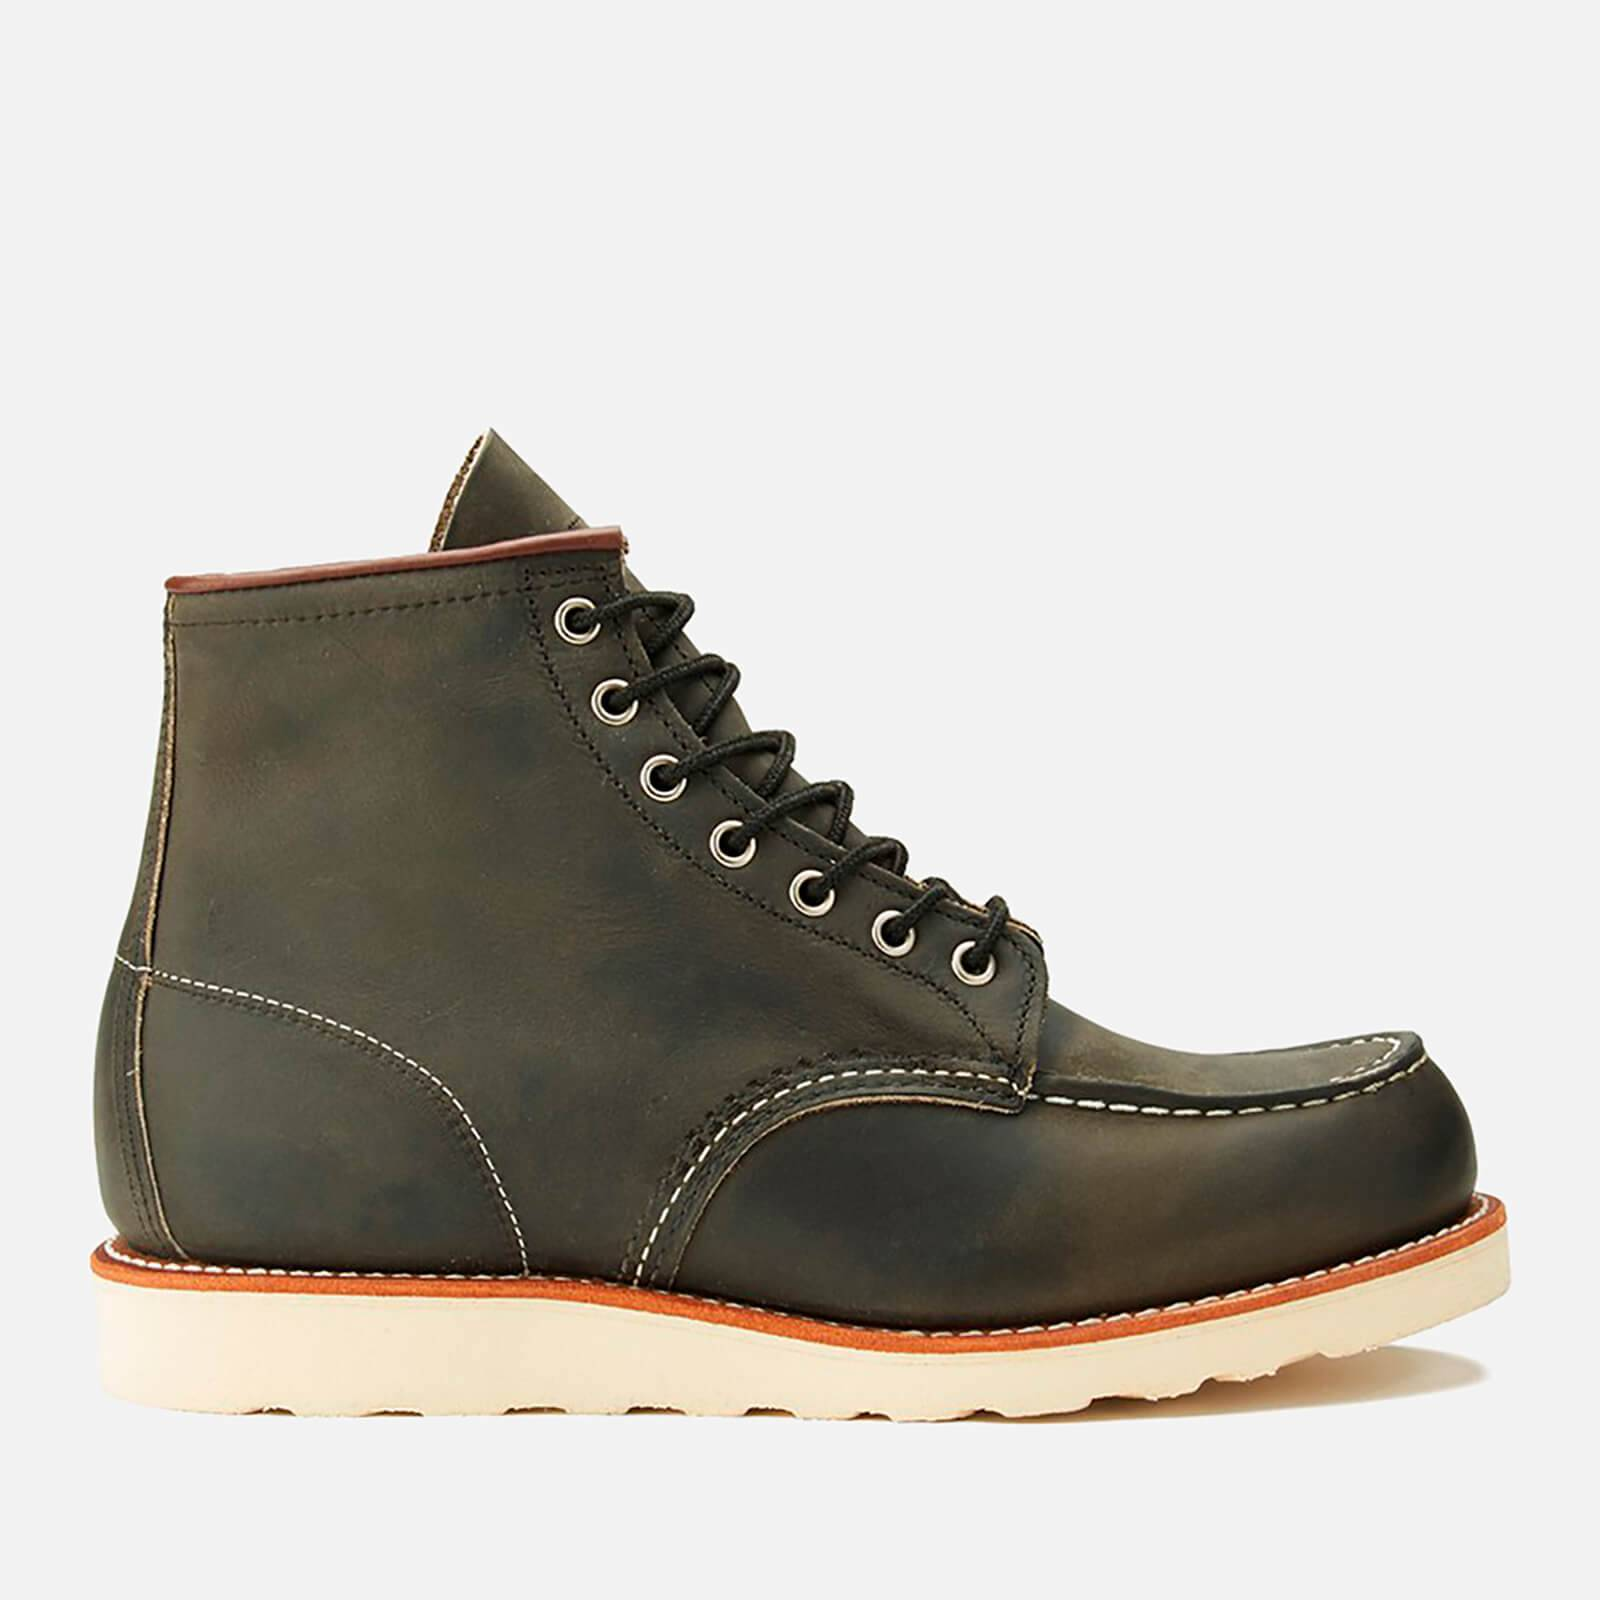 Red Wing Men's 6 Inch Moc Toe Leather Lace Up Boots - Charcoal Rough and Tough - UK 10/US 11